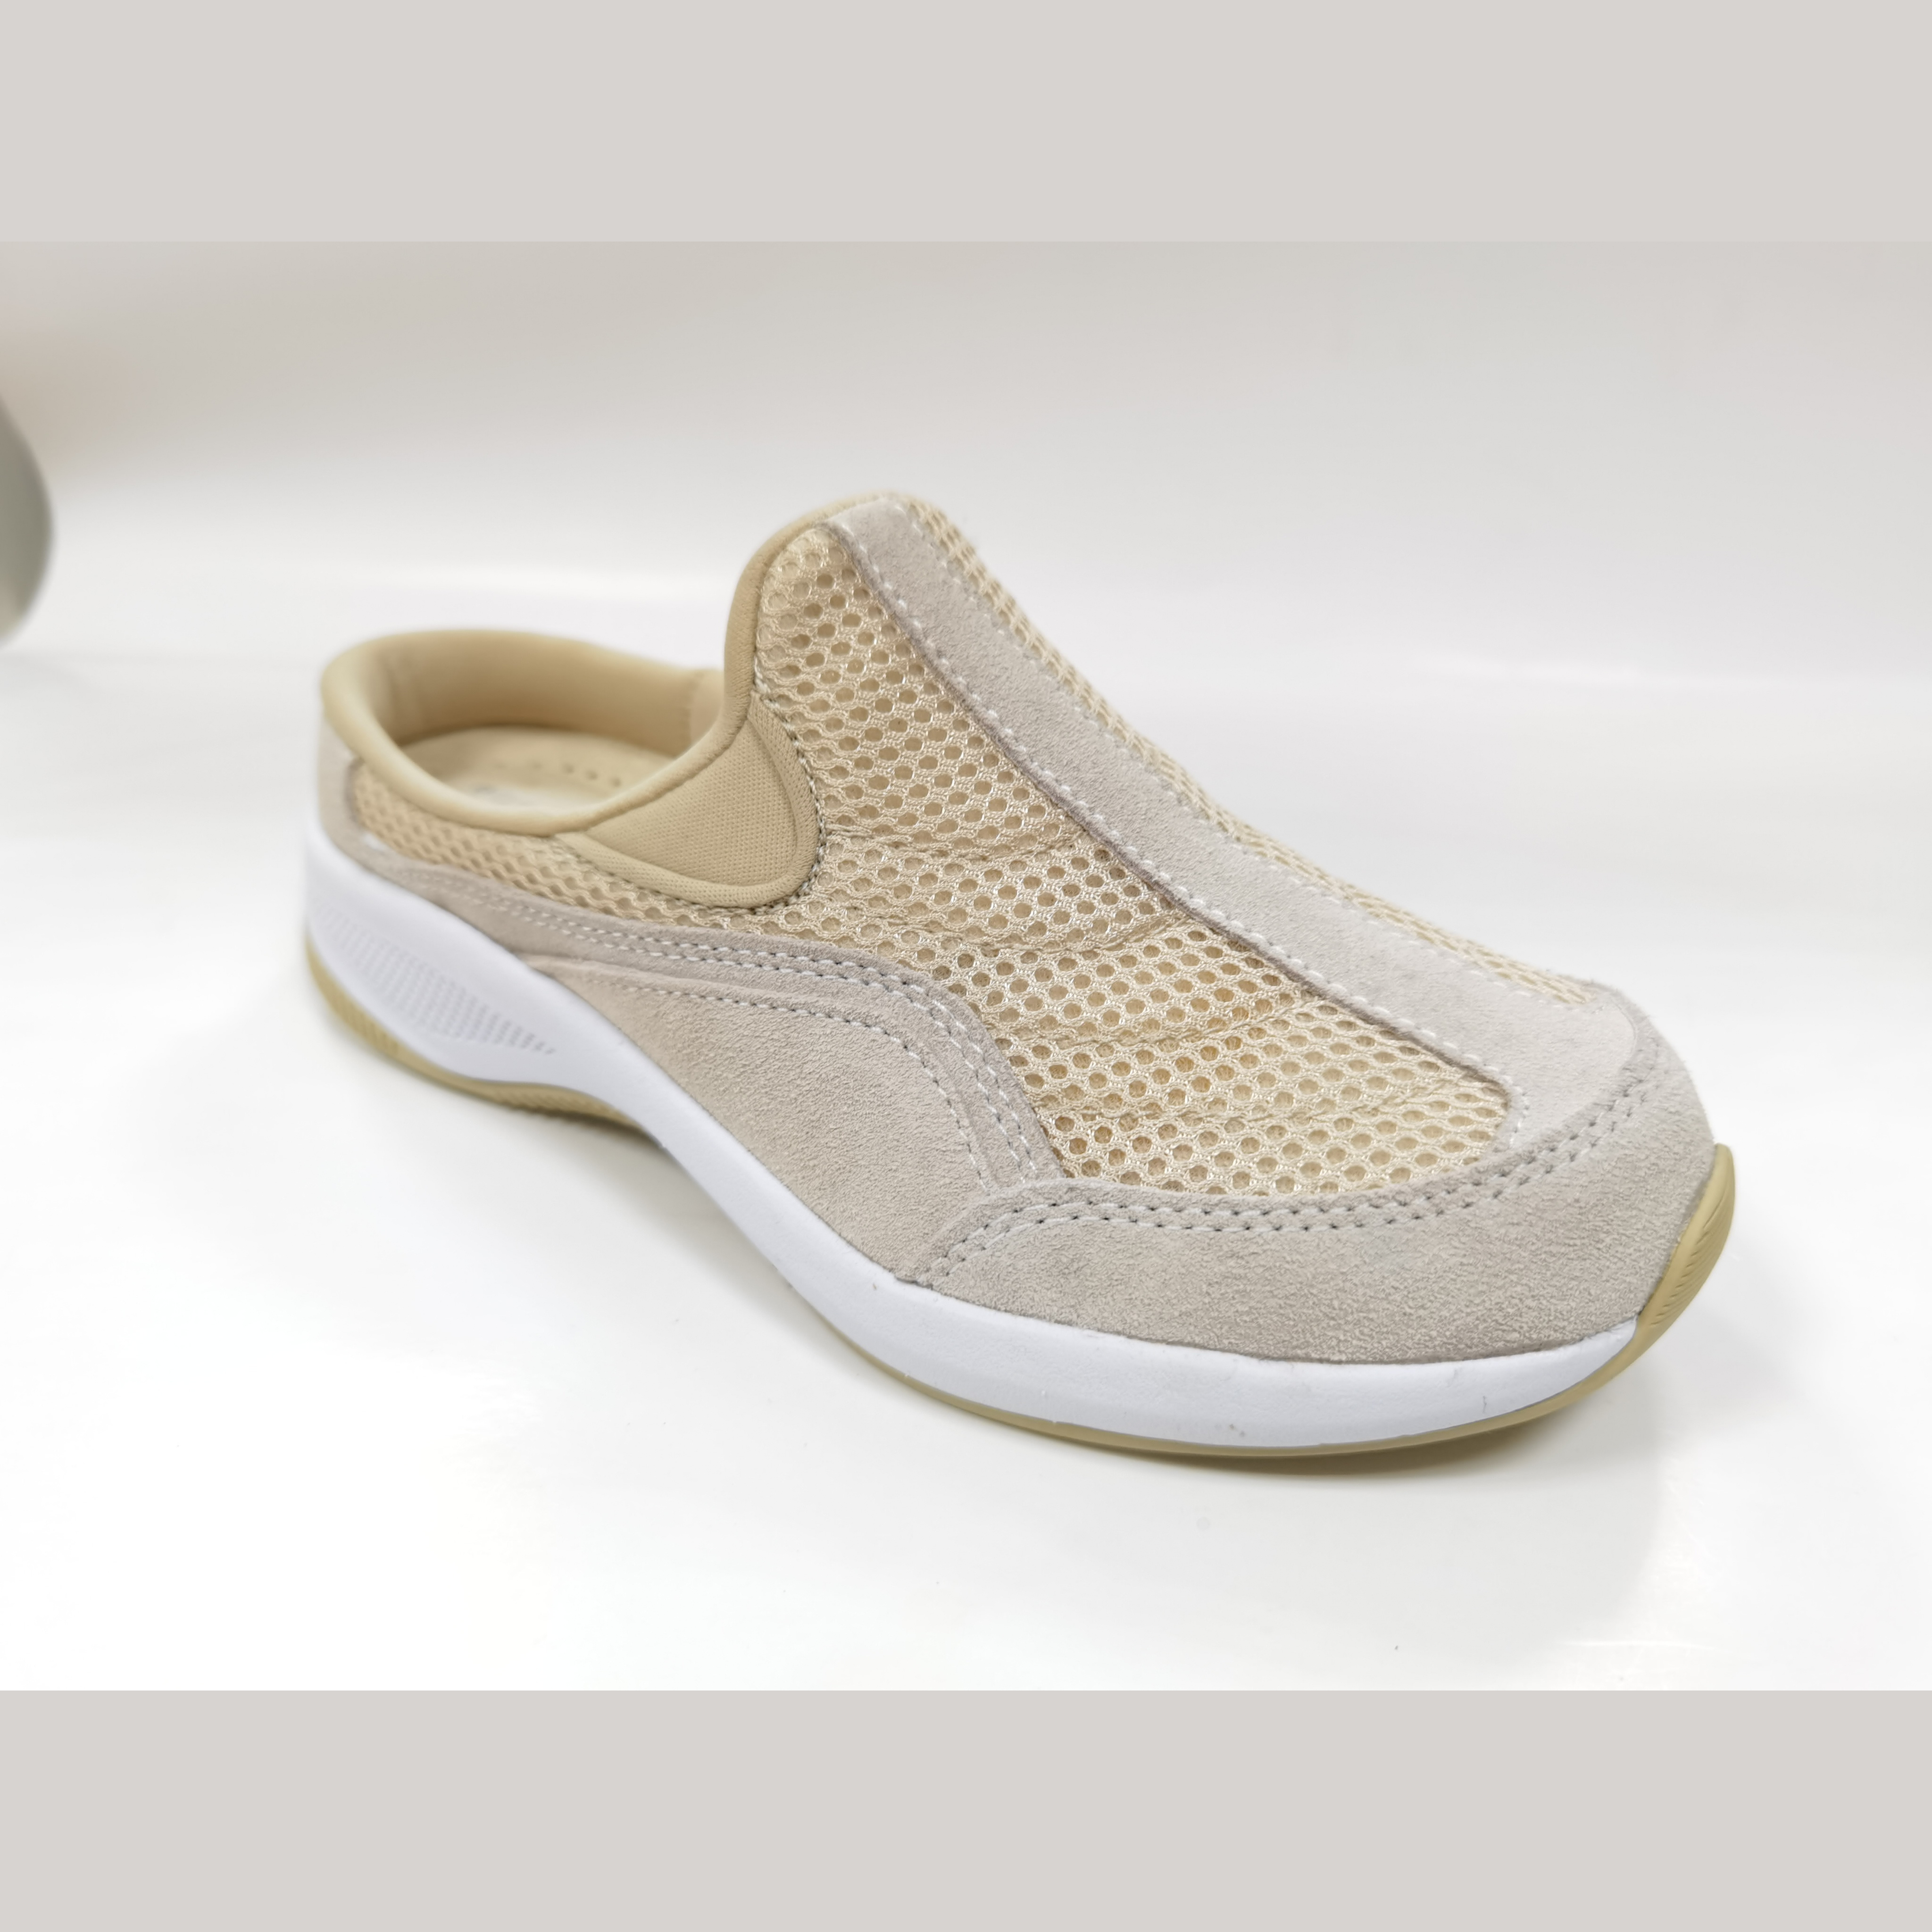 Dropshipping Leather Mesh Women Sneakers Shoes Flat Slip on Platform Sneakers for Women